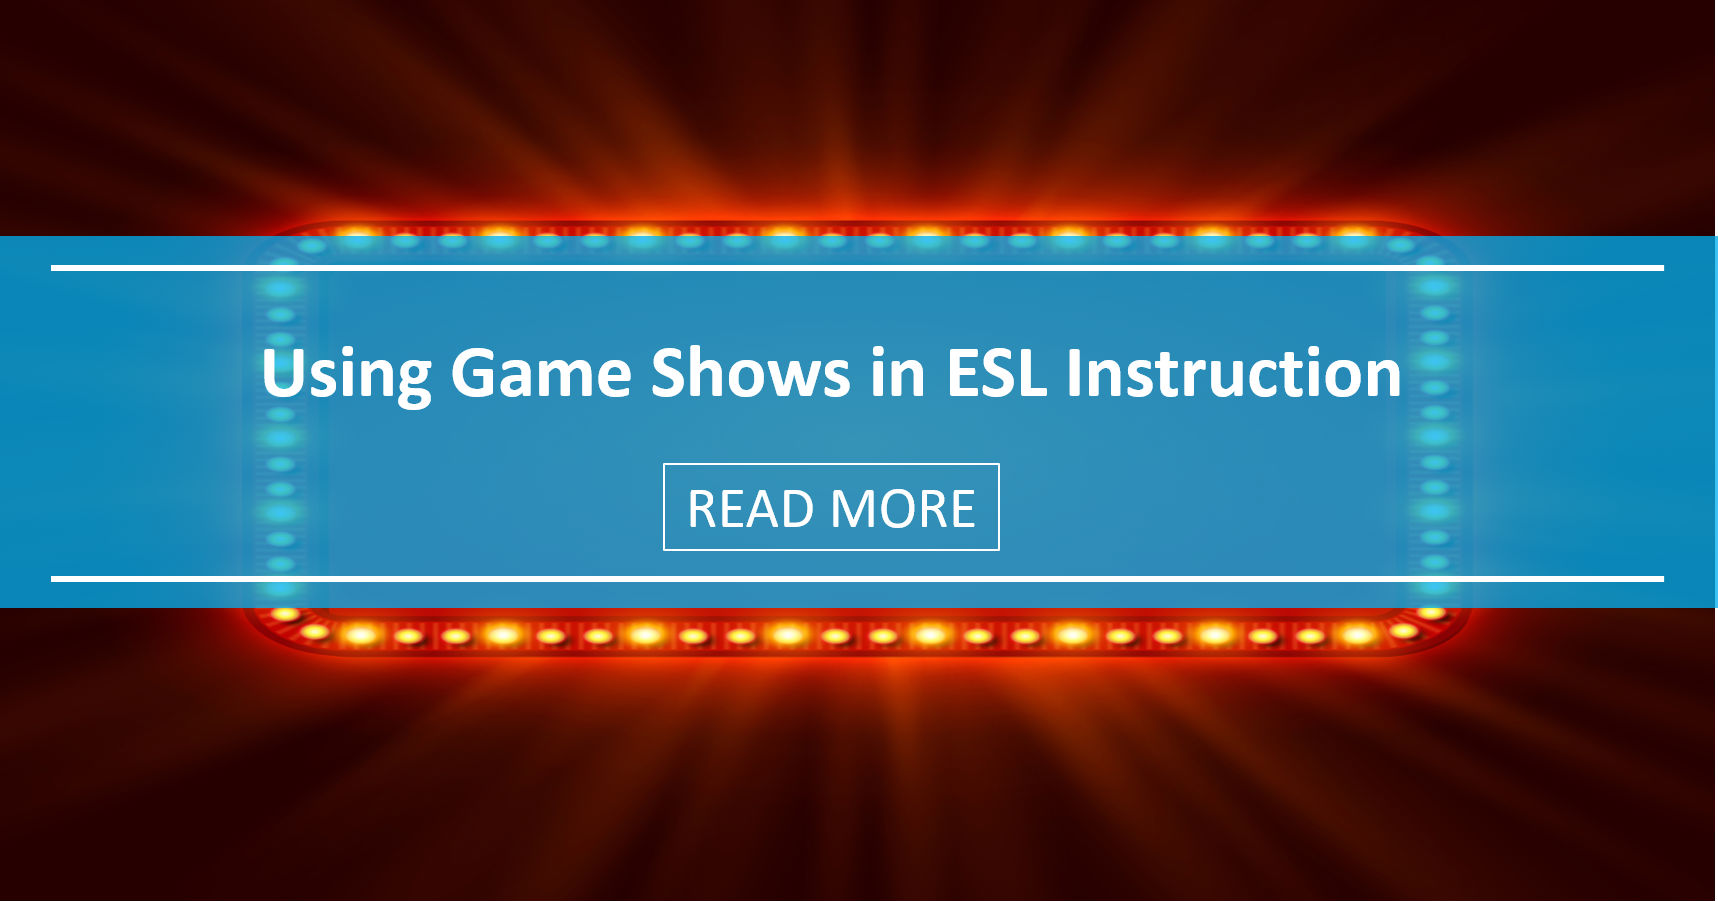 Using Game Shows in ESL Instruction